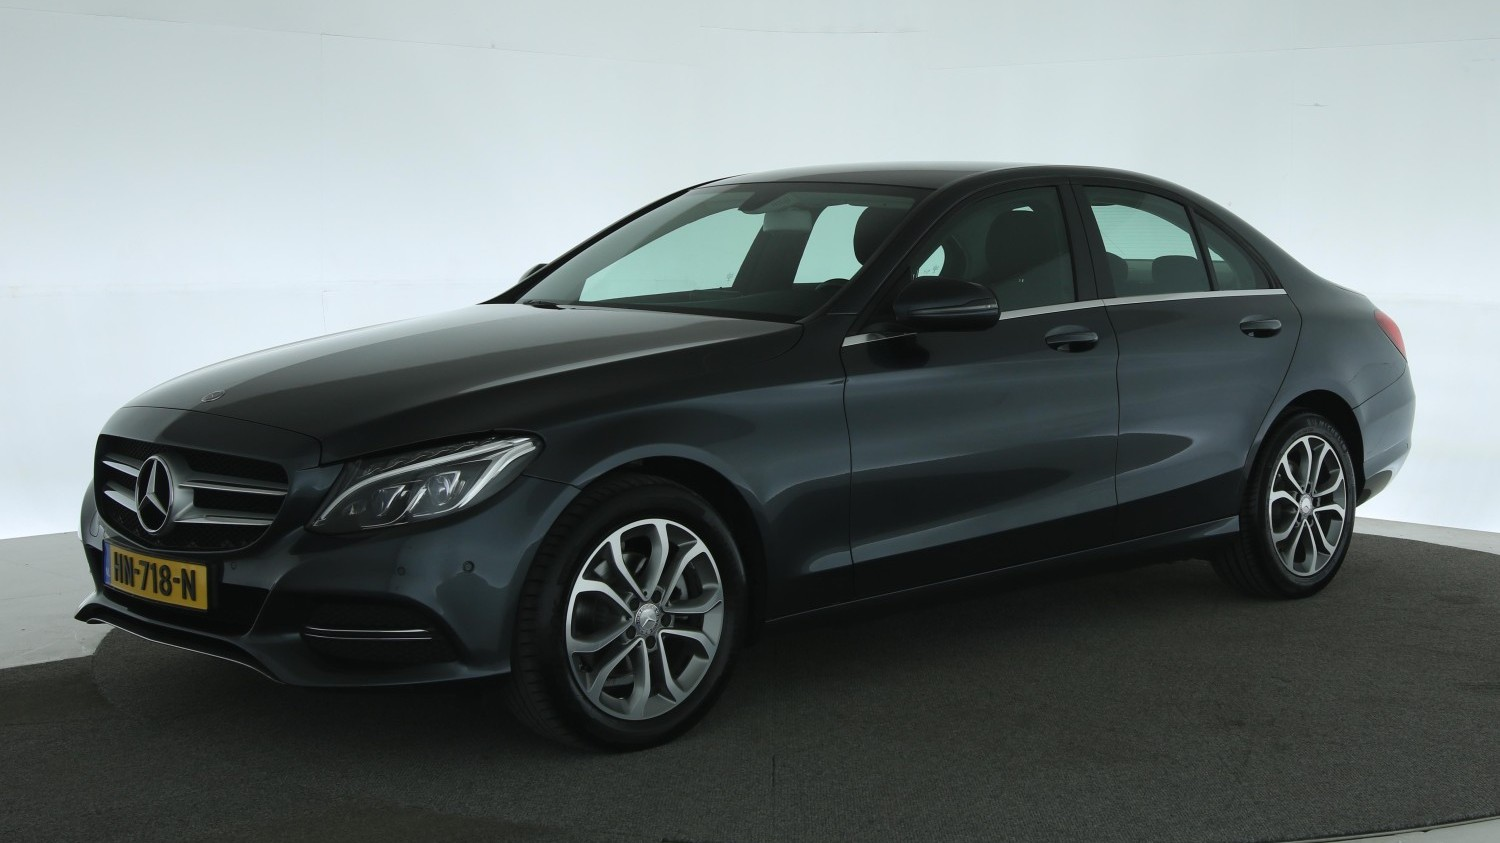 Mercedes-Benz C-klasse Sedan 2015 HN-718-N 1